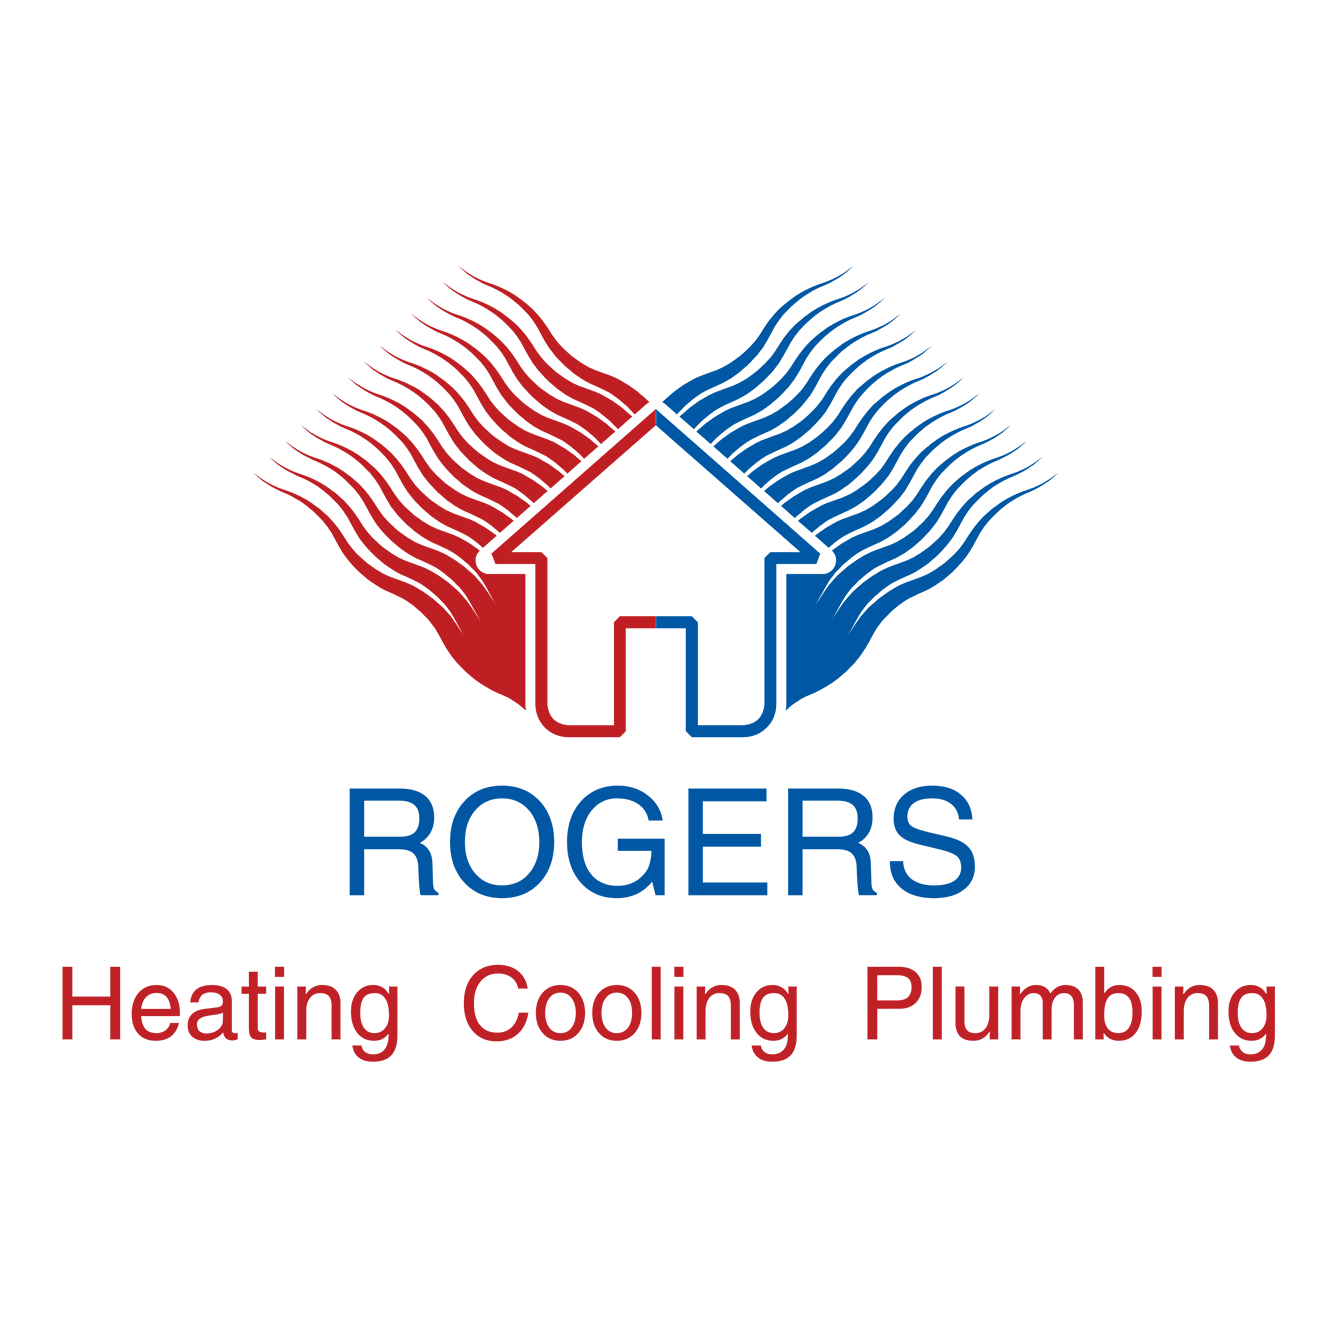 Rogers Heating, Cooling, & Plumbing